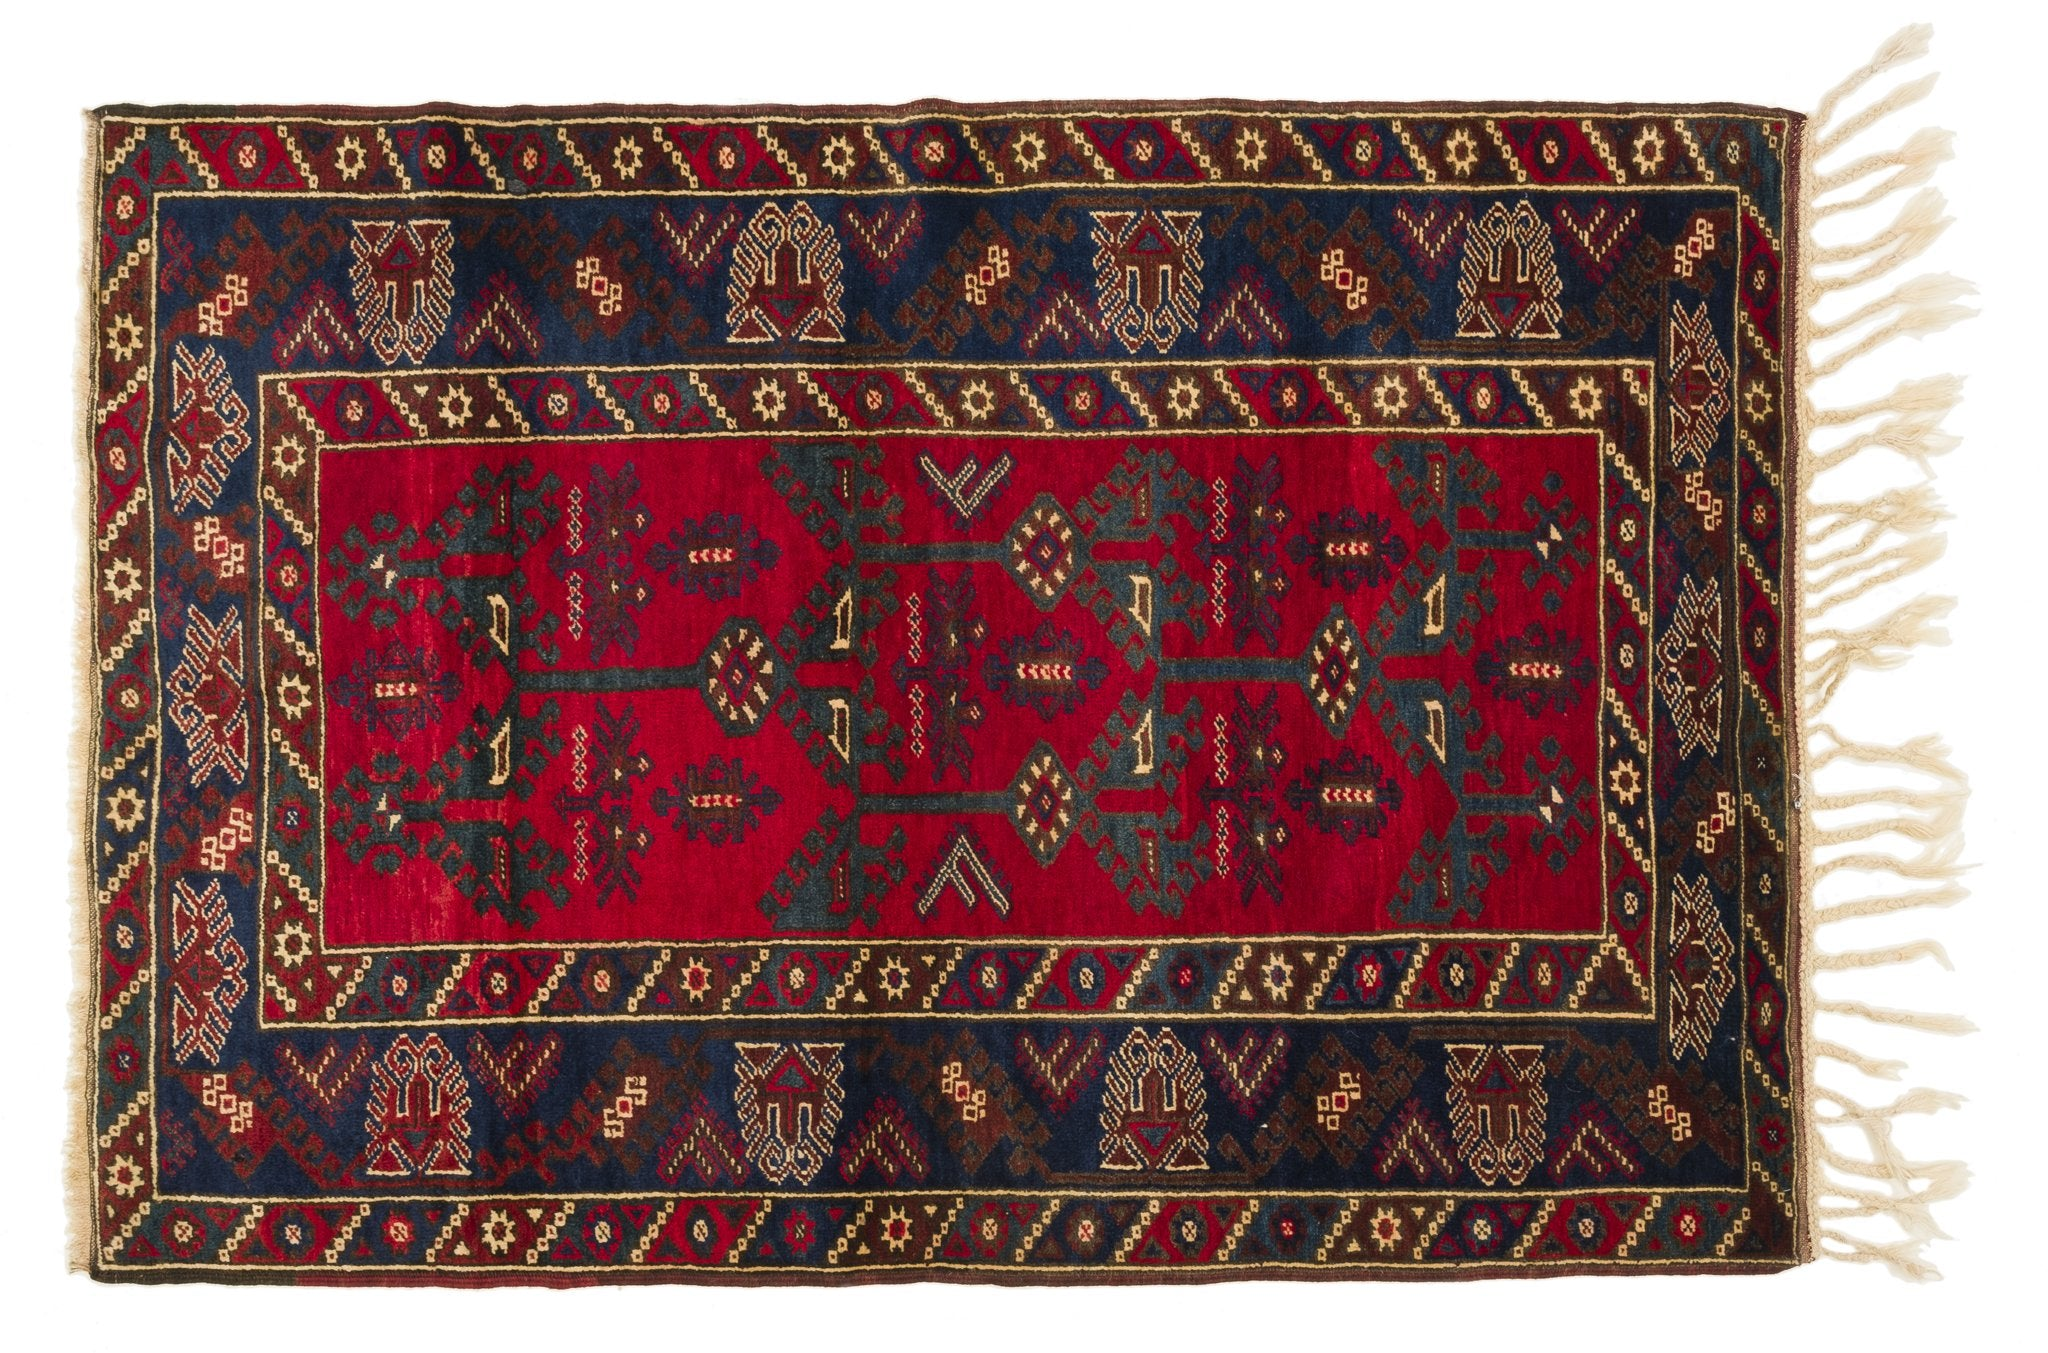 Vintage Turkish Rug Arunas